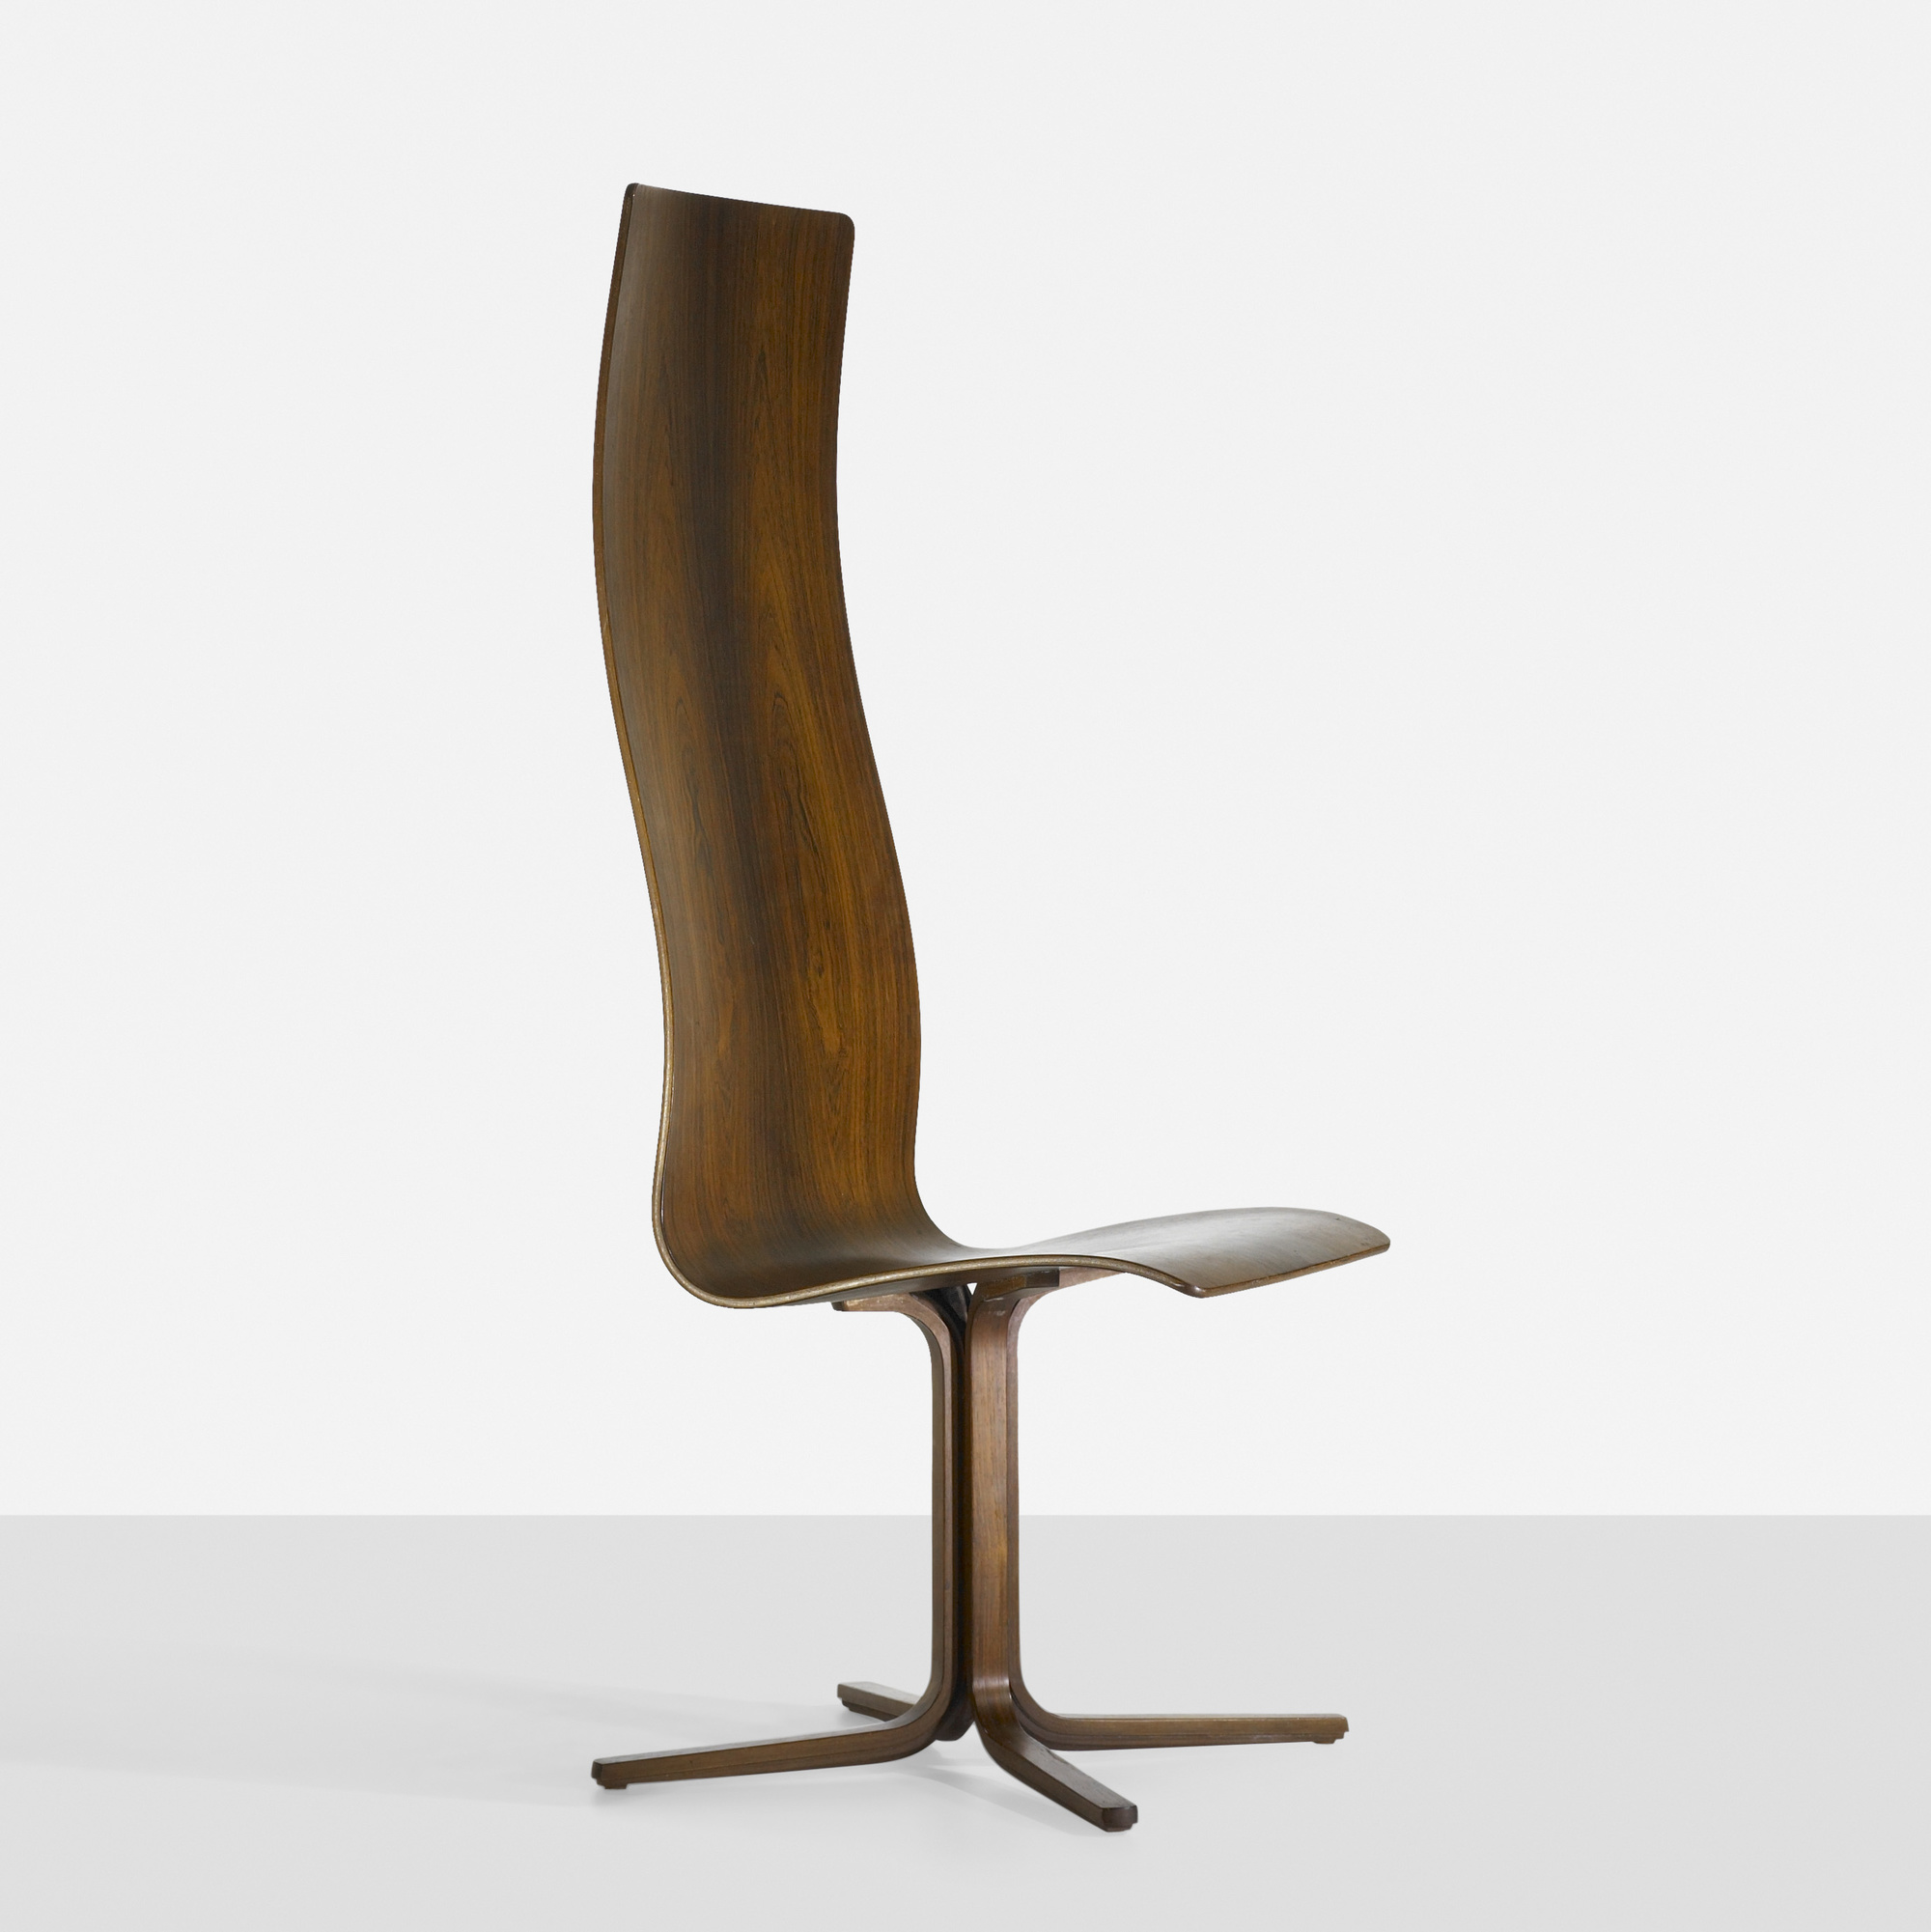 279: Arne Jacobsen / Rare Oxford Chair For St. Catherineu0027s College (1 Of